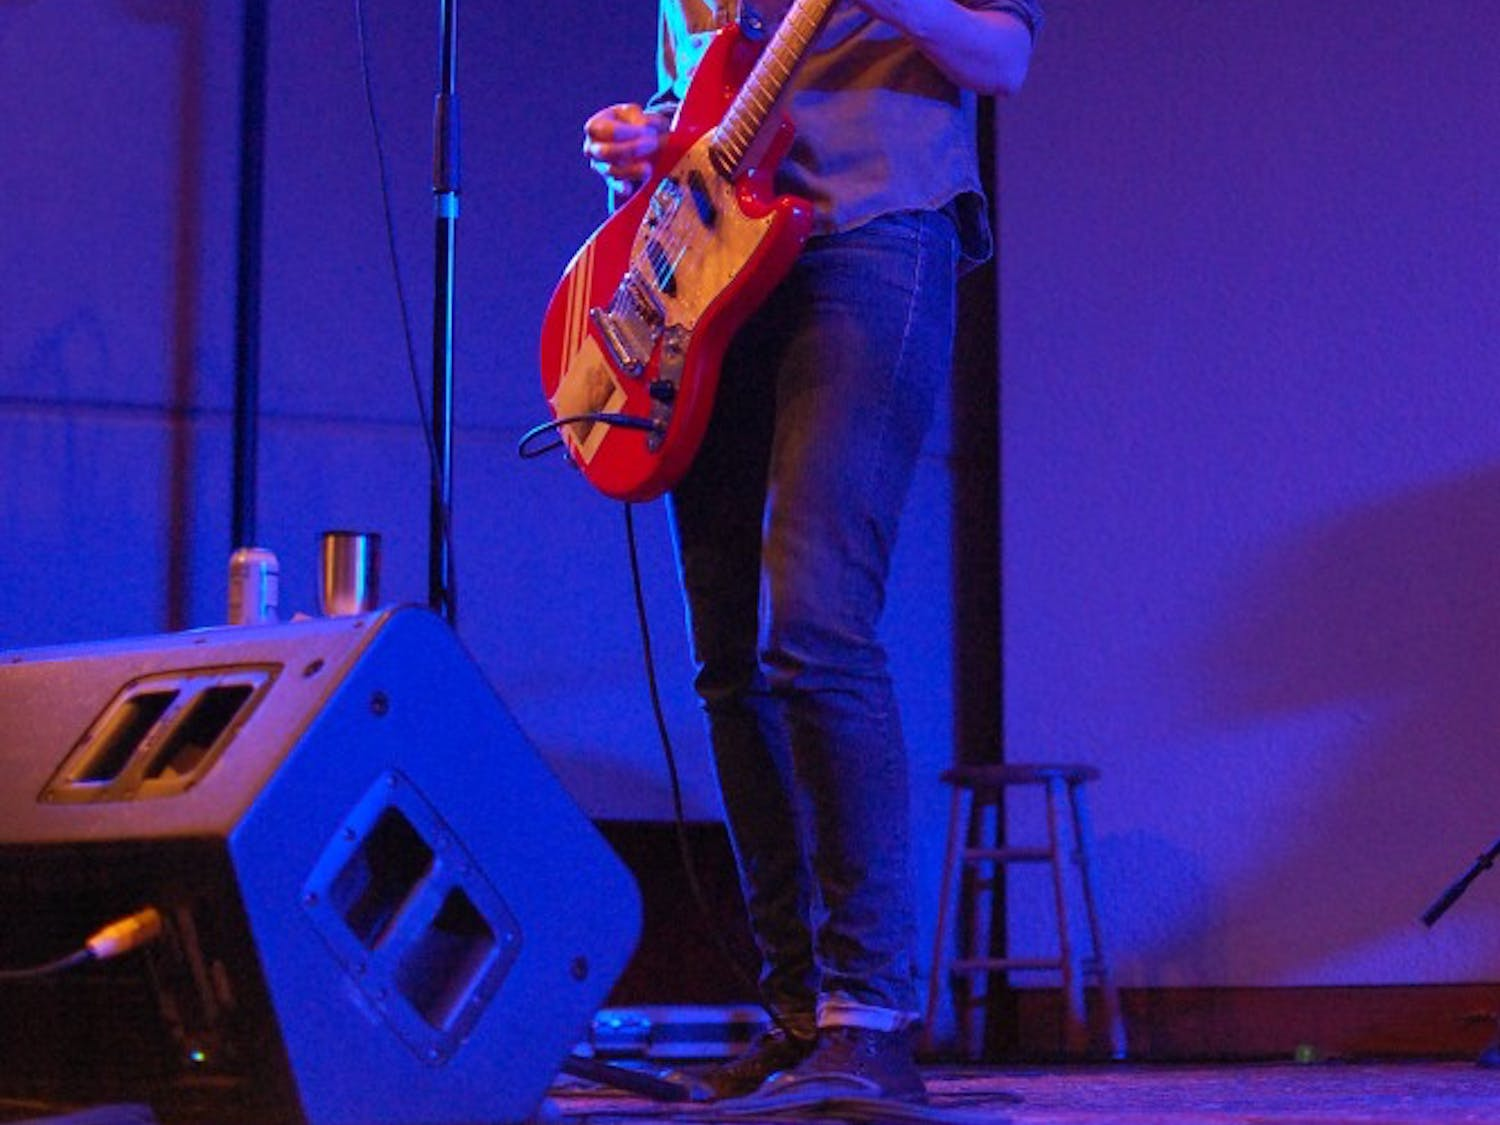 Heather McEntire of Mount Moriah performs with the band at the Southeastern Center for Contemporary Art.